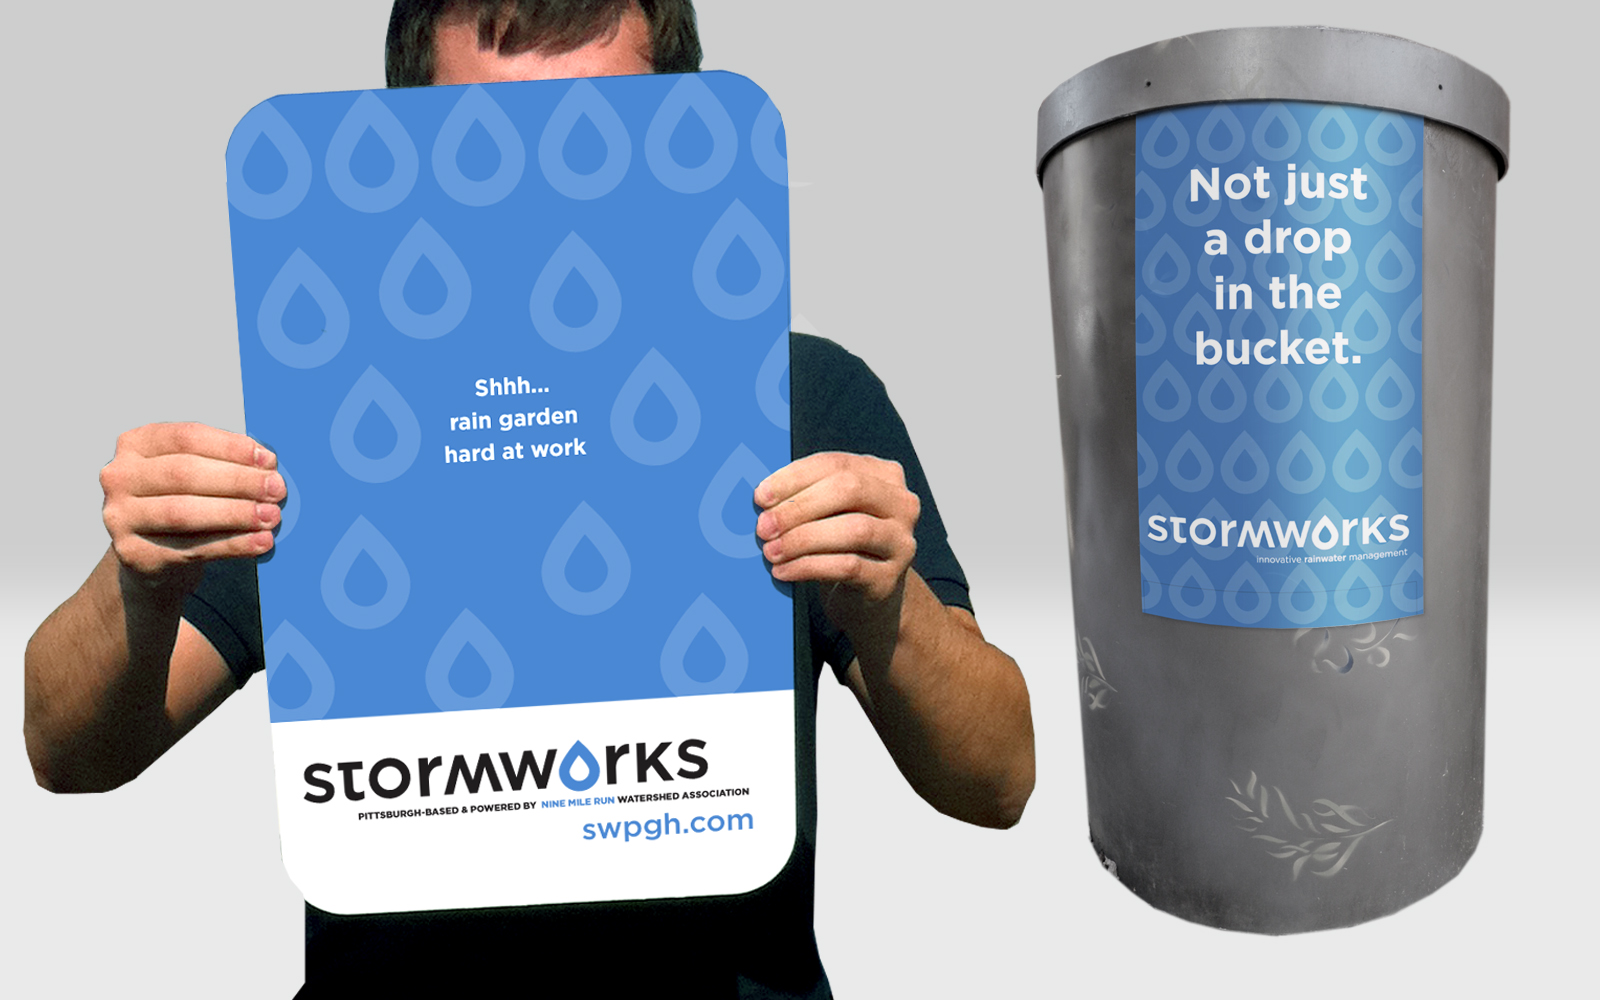 Stormworks sign